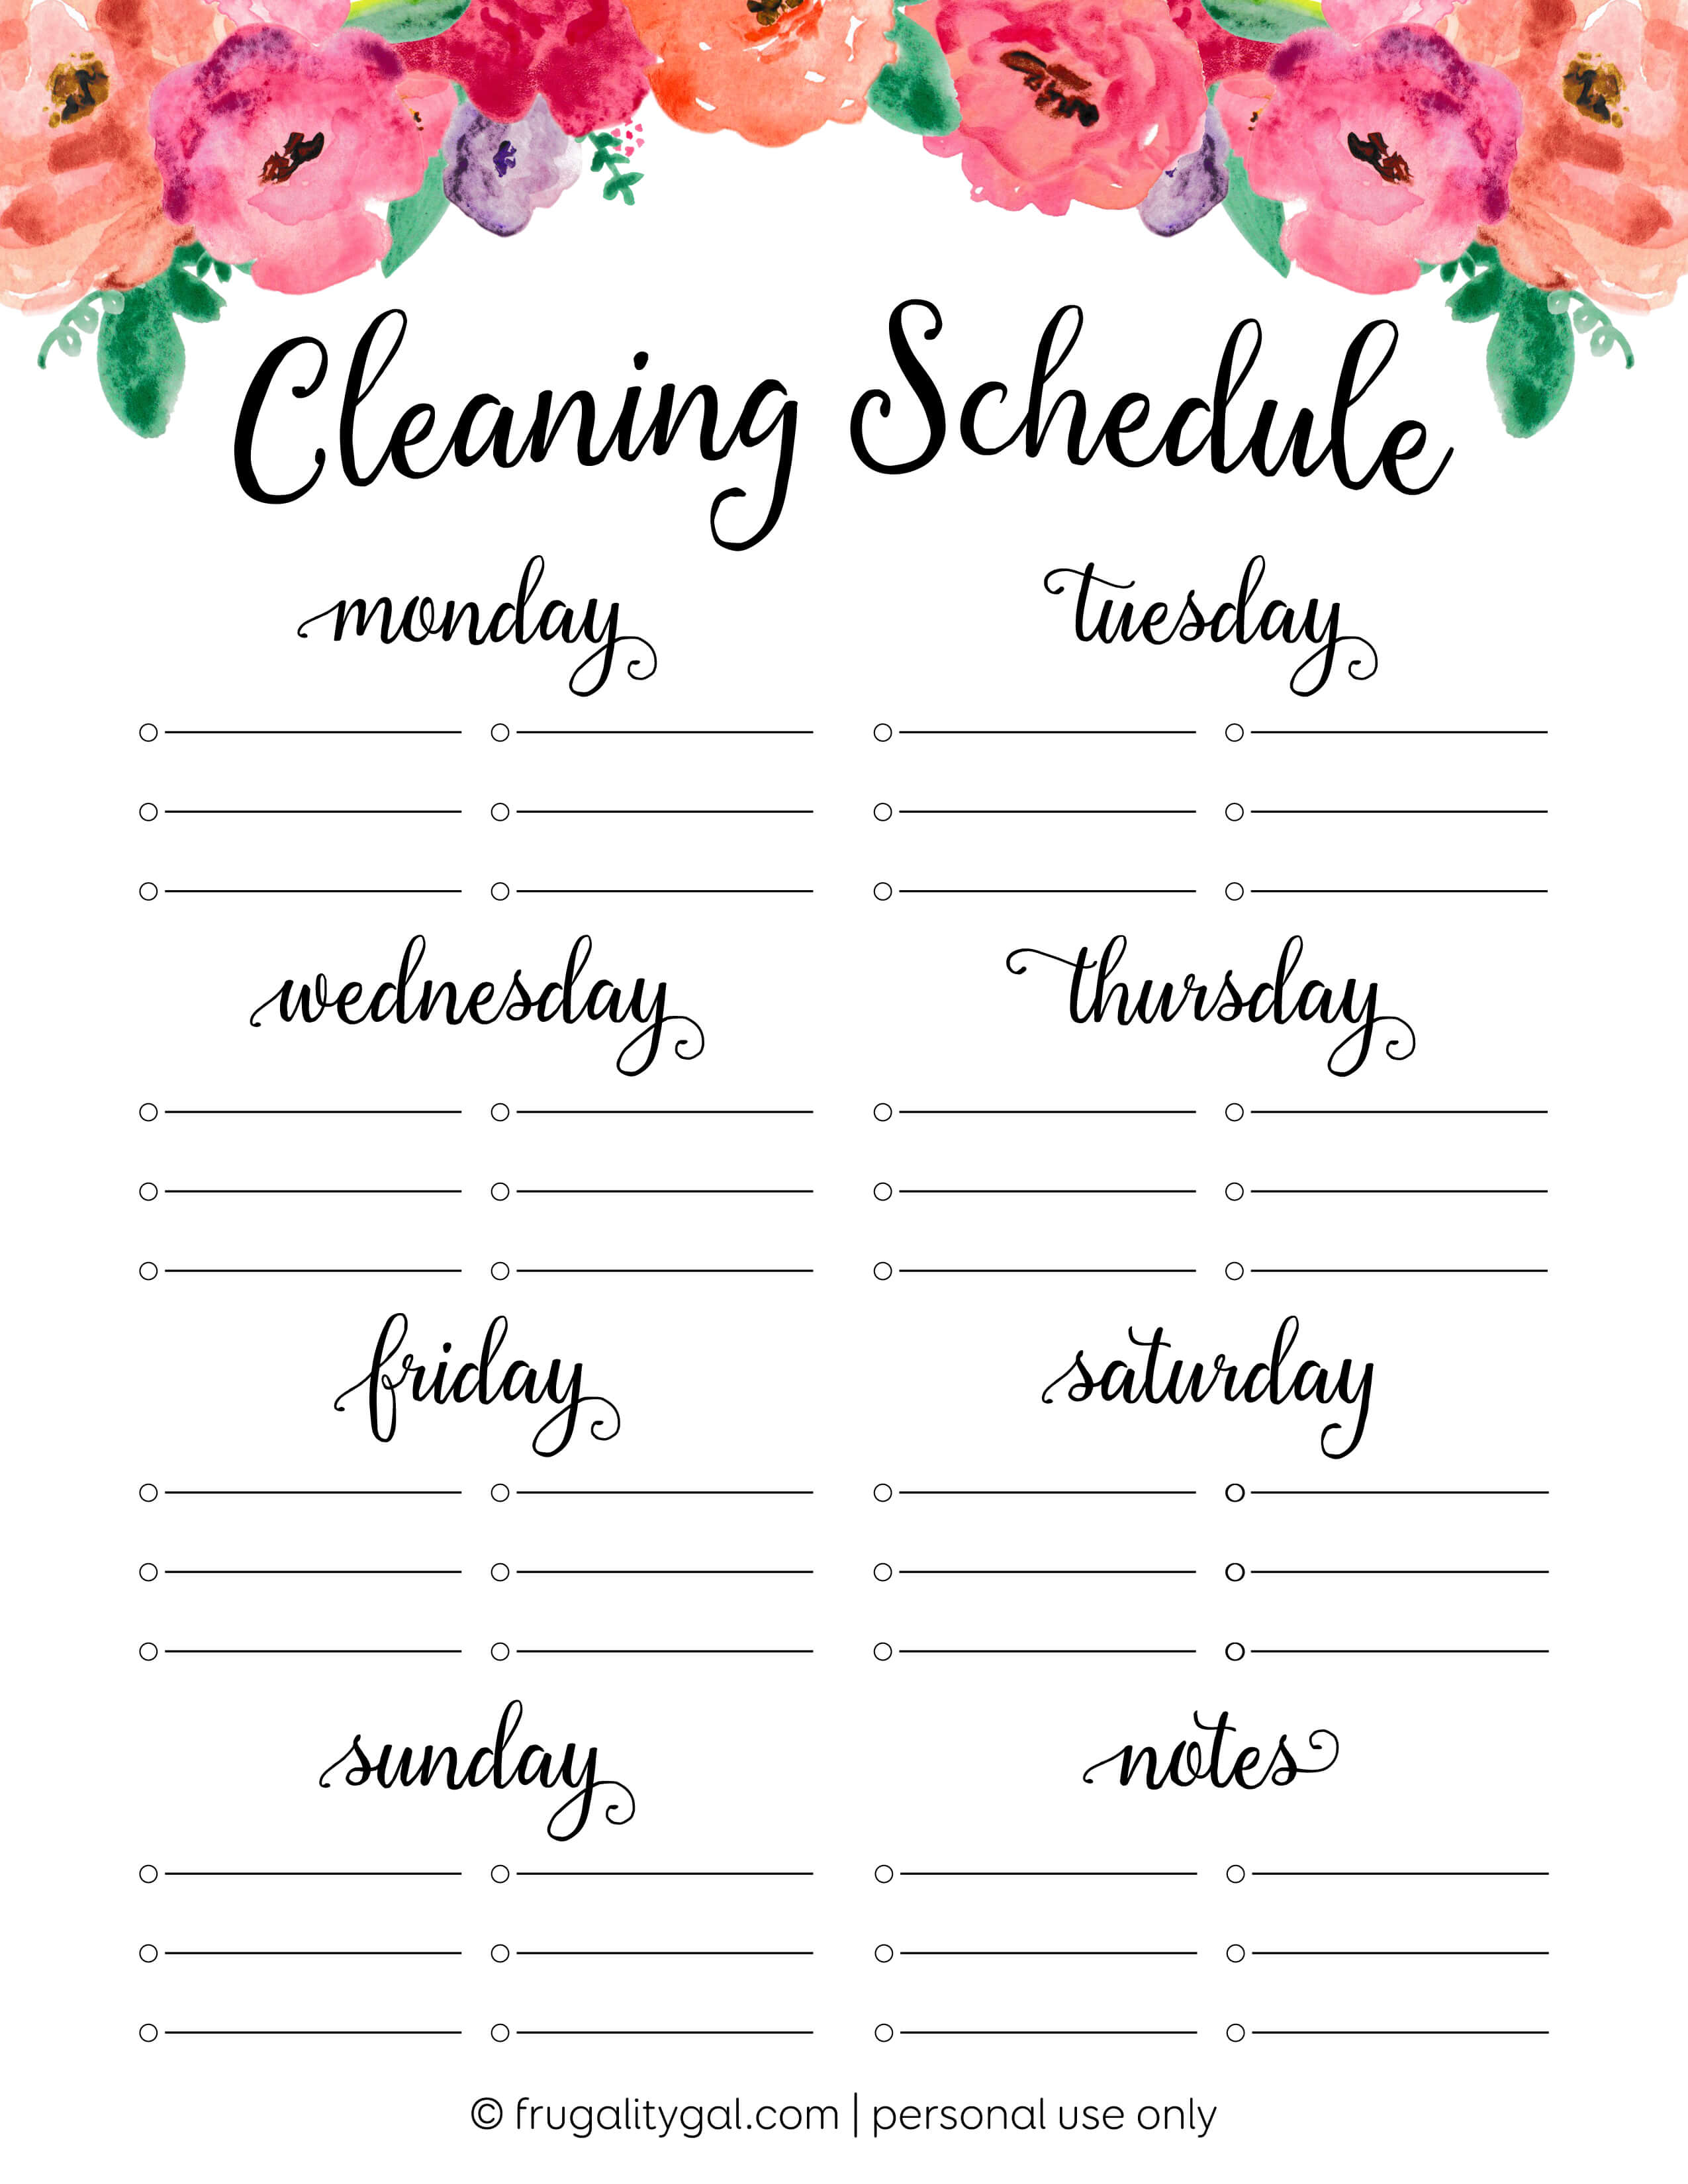 Free Cleaning Schedule Printable | Cleaning Checklist